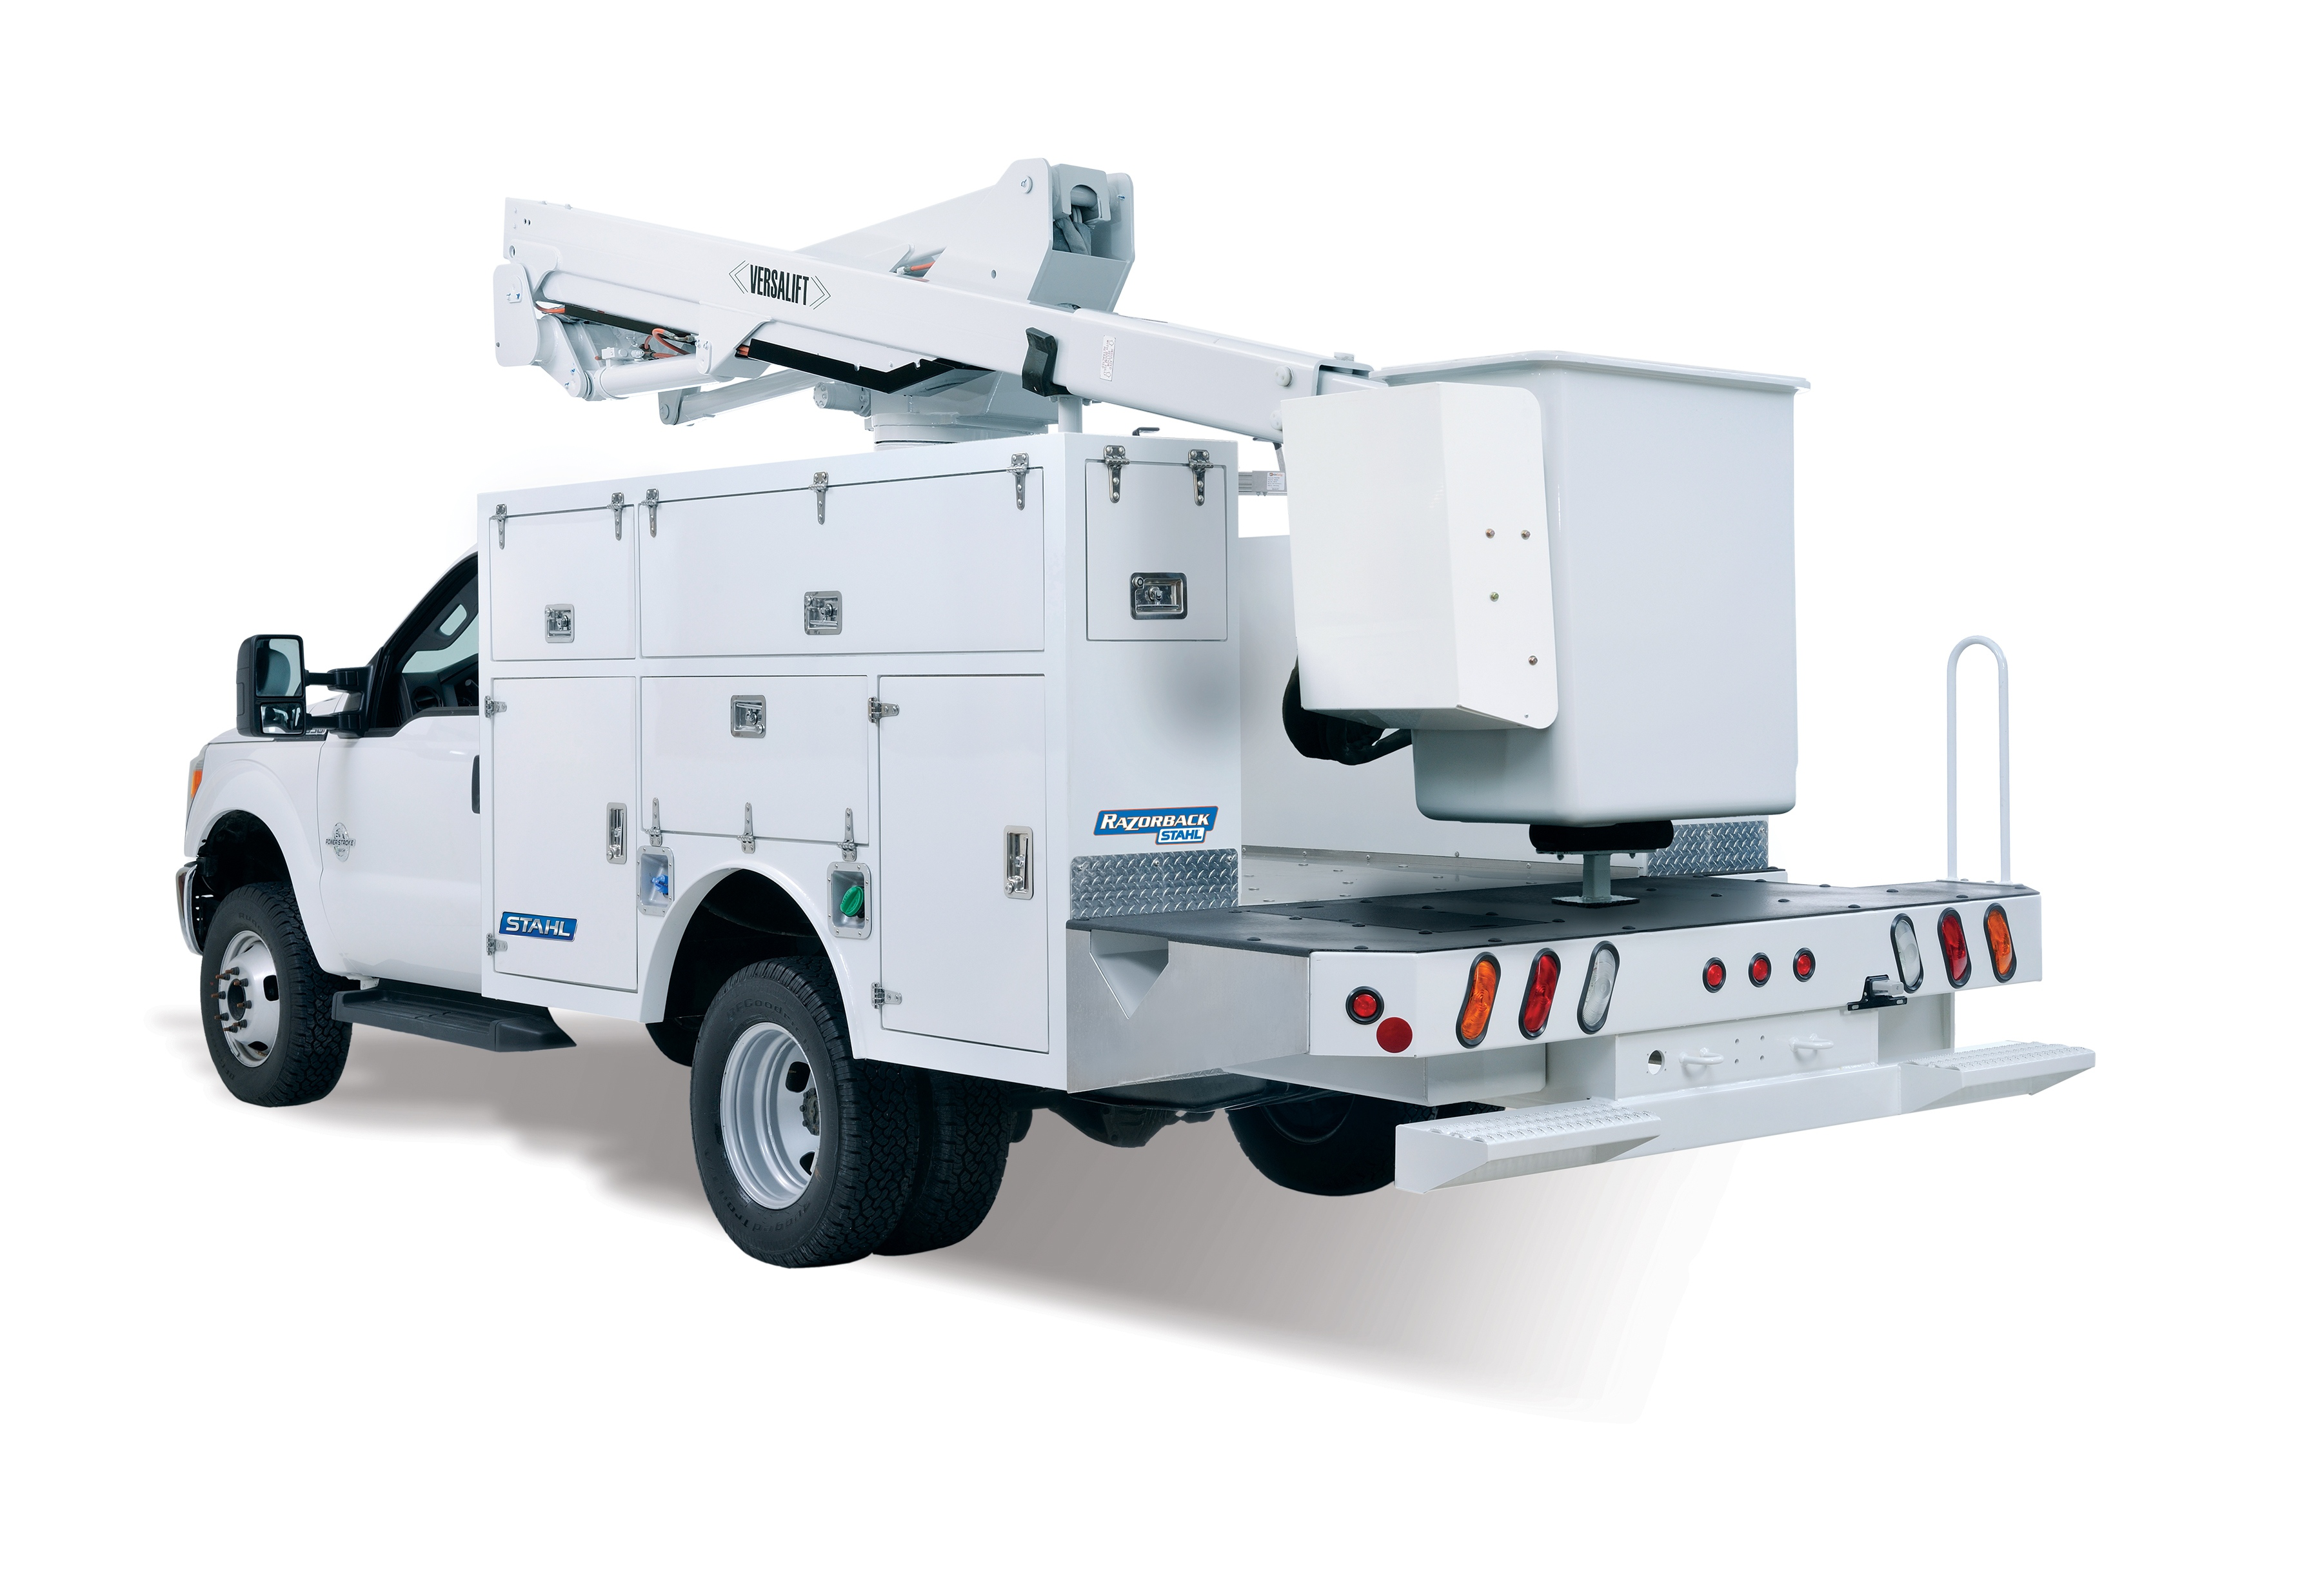 Stahl launches first polymer service body | Medium Duty Work Truck Info